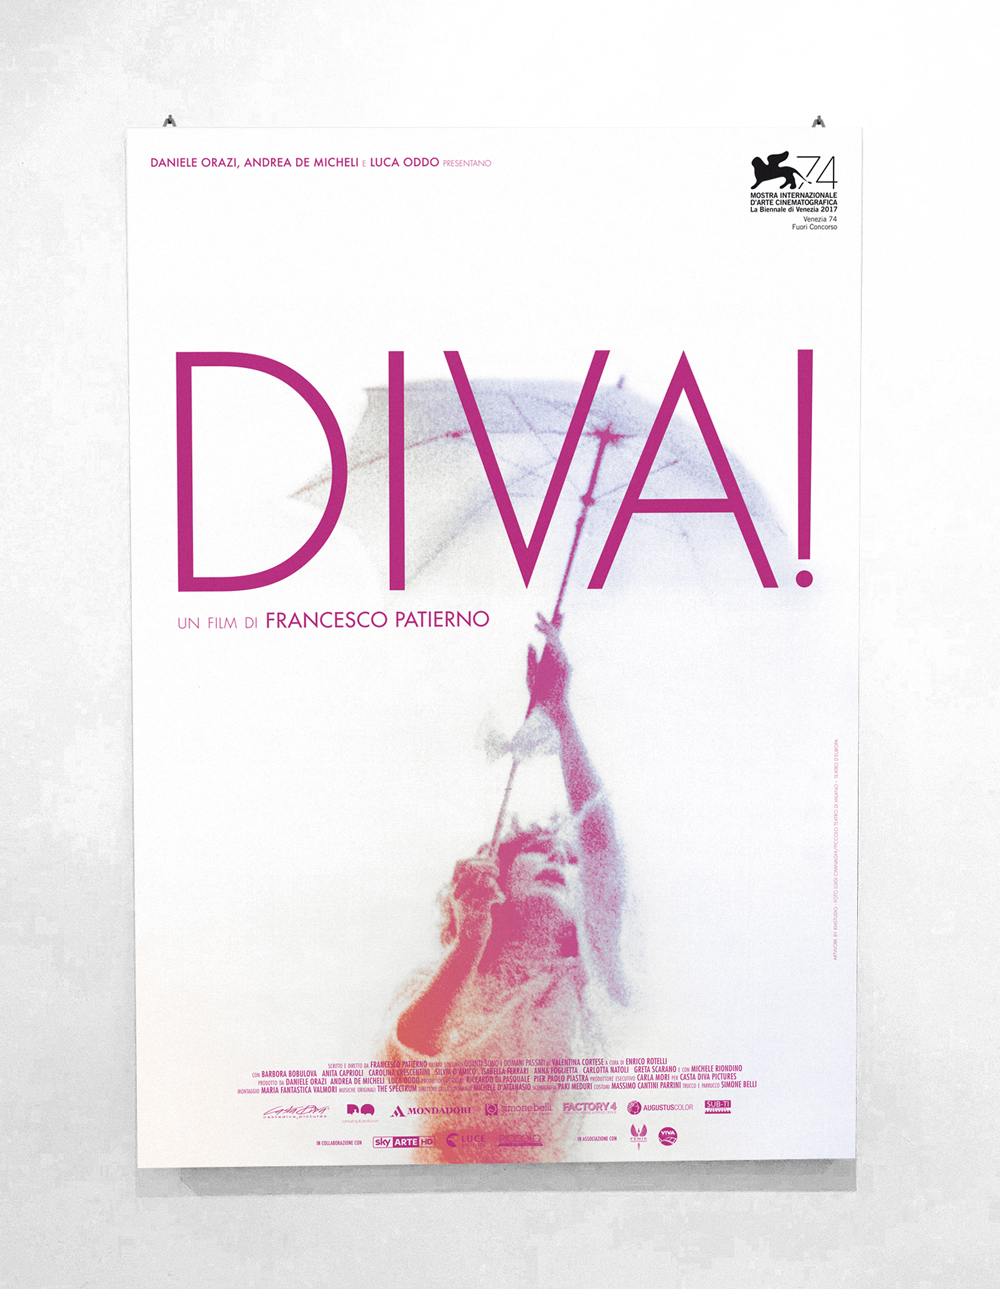 Diva - Directed by Francesco Patierno - Official Italian Poster